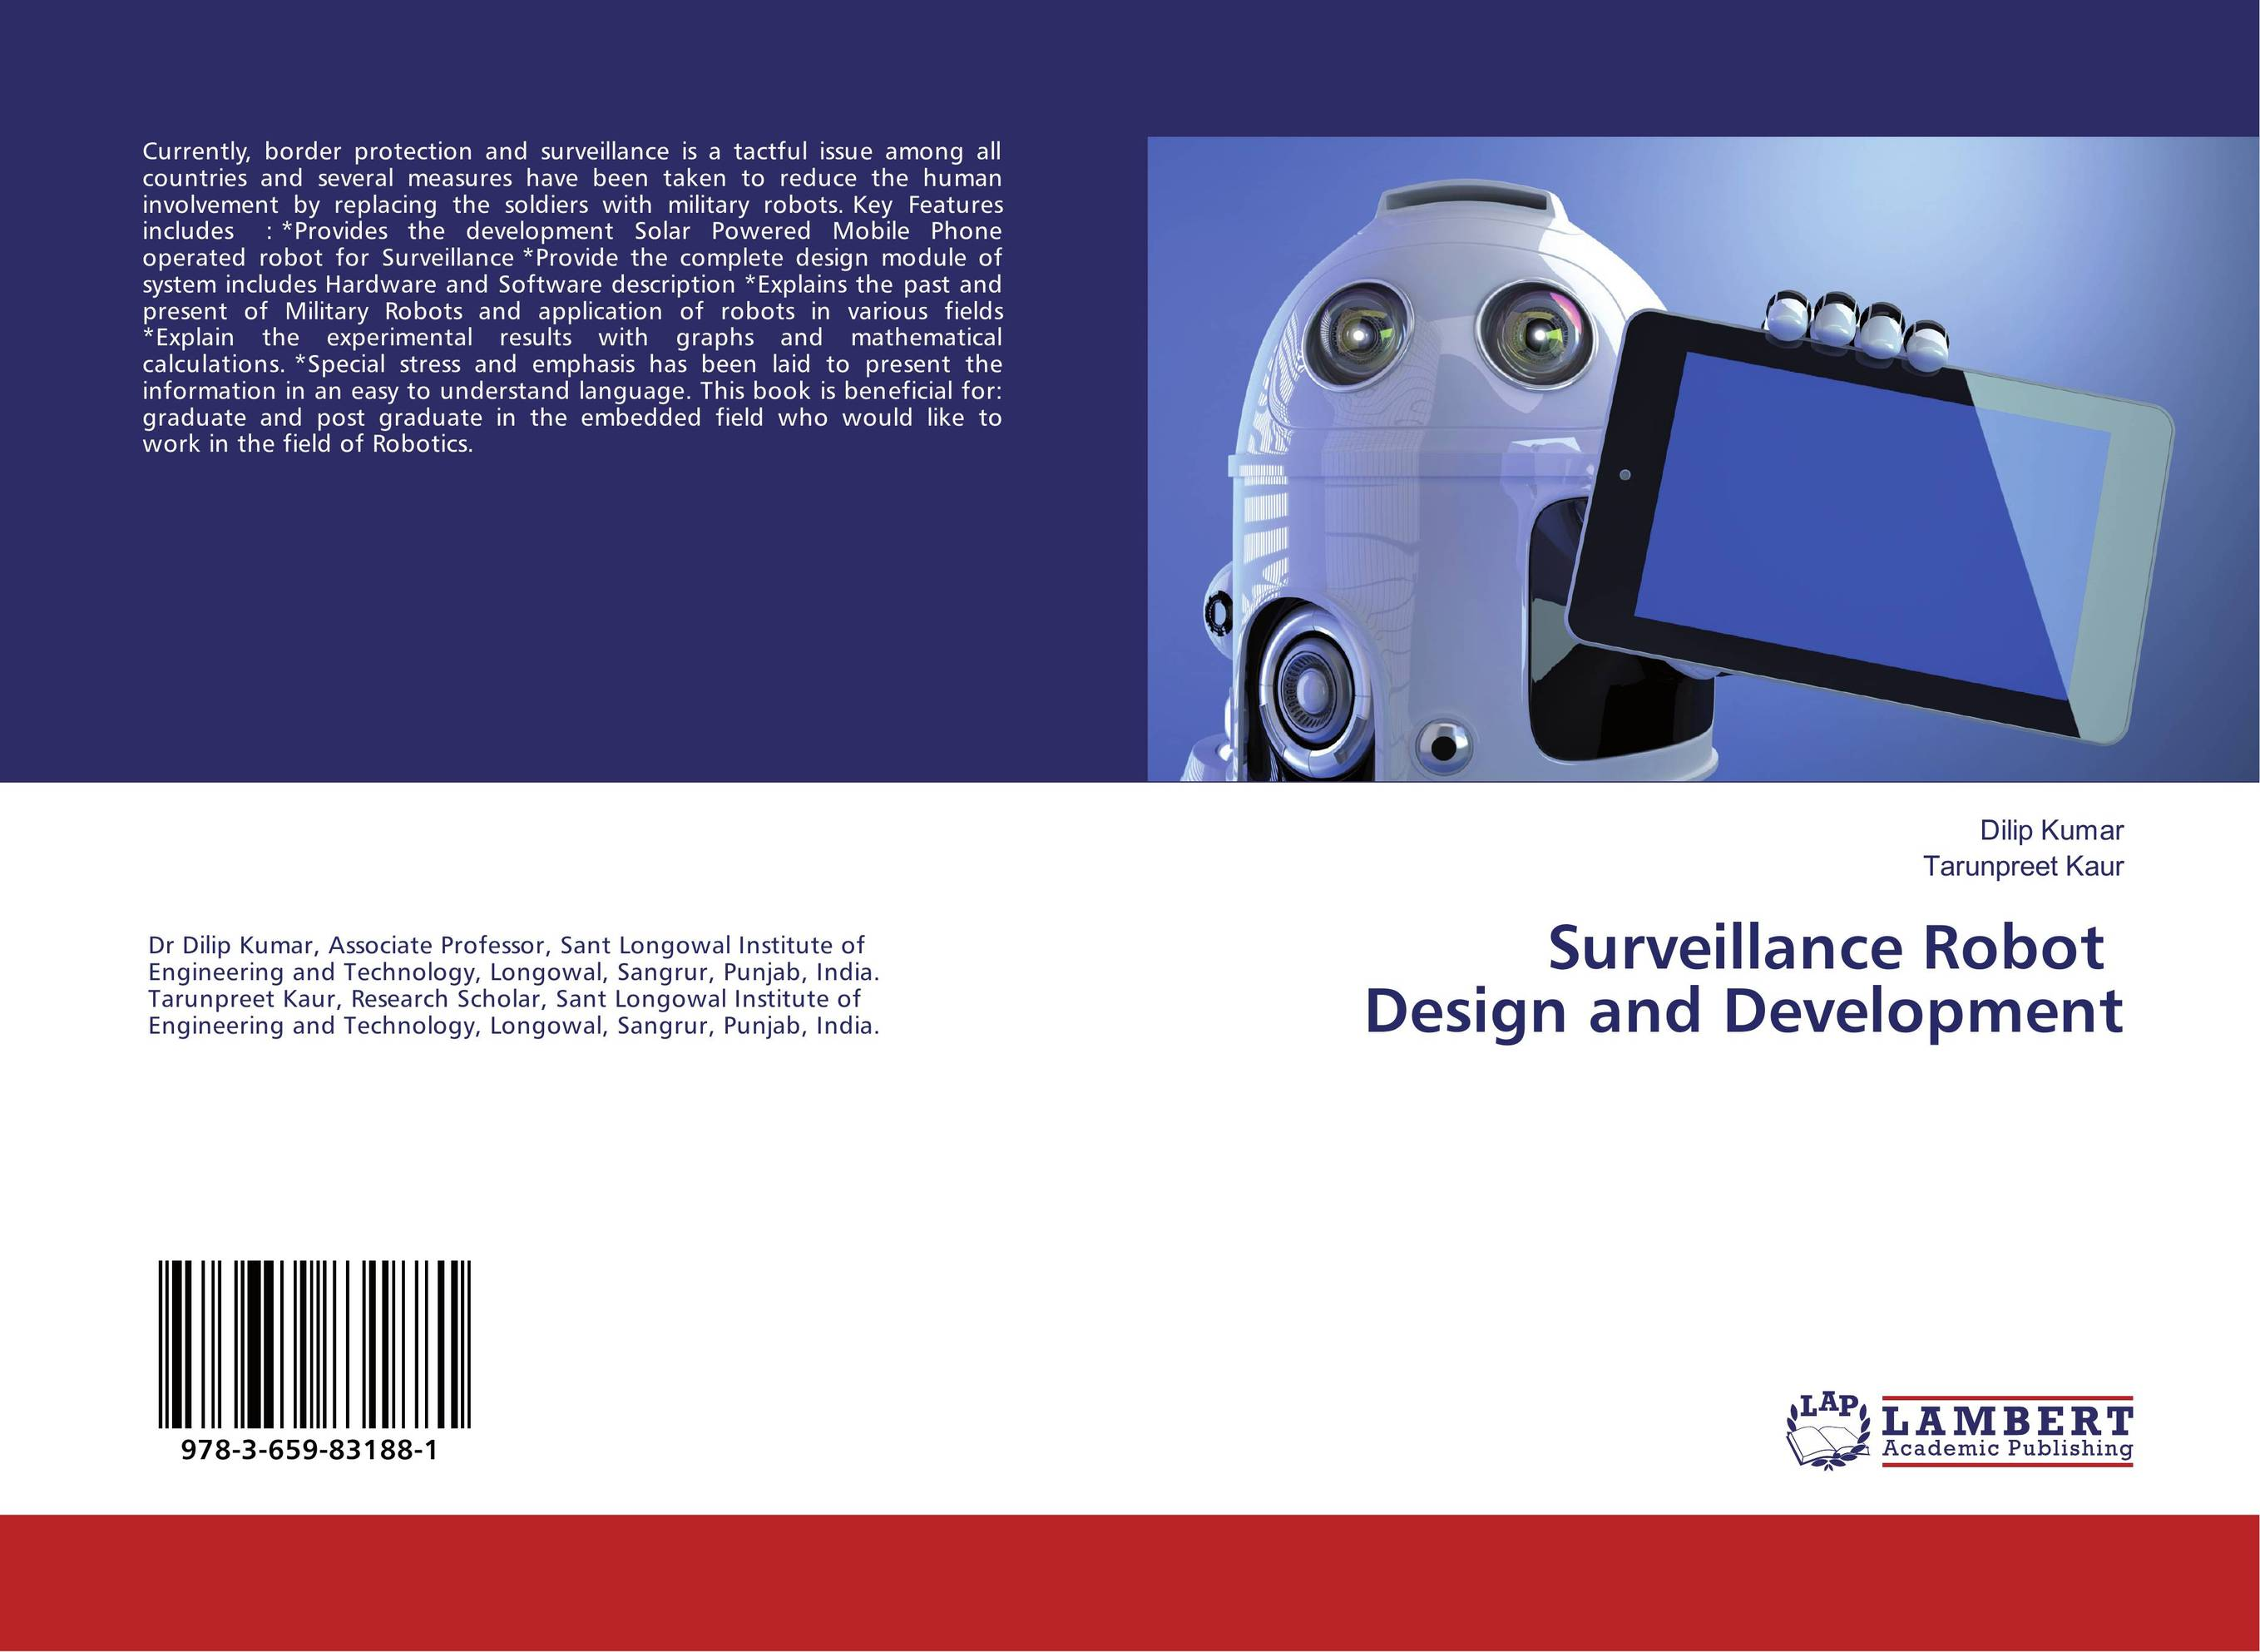 Surveillance Robot Design and Development robots and the whole technology story